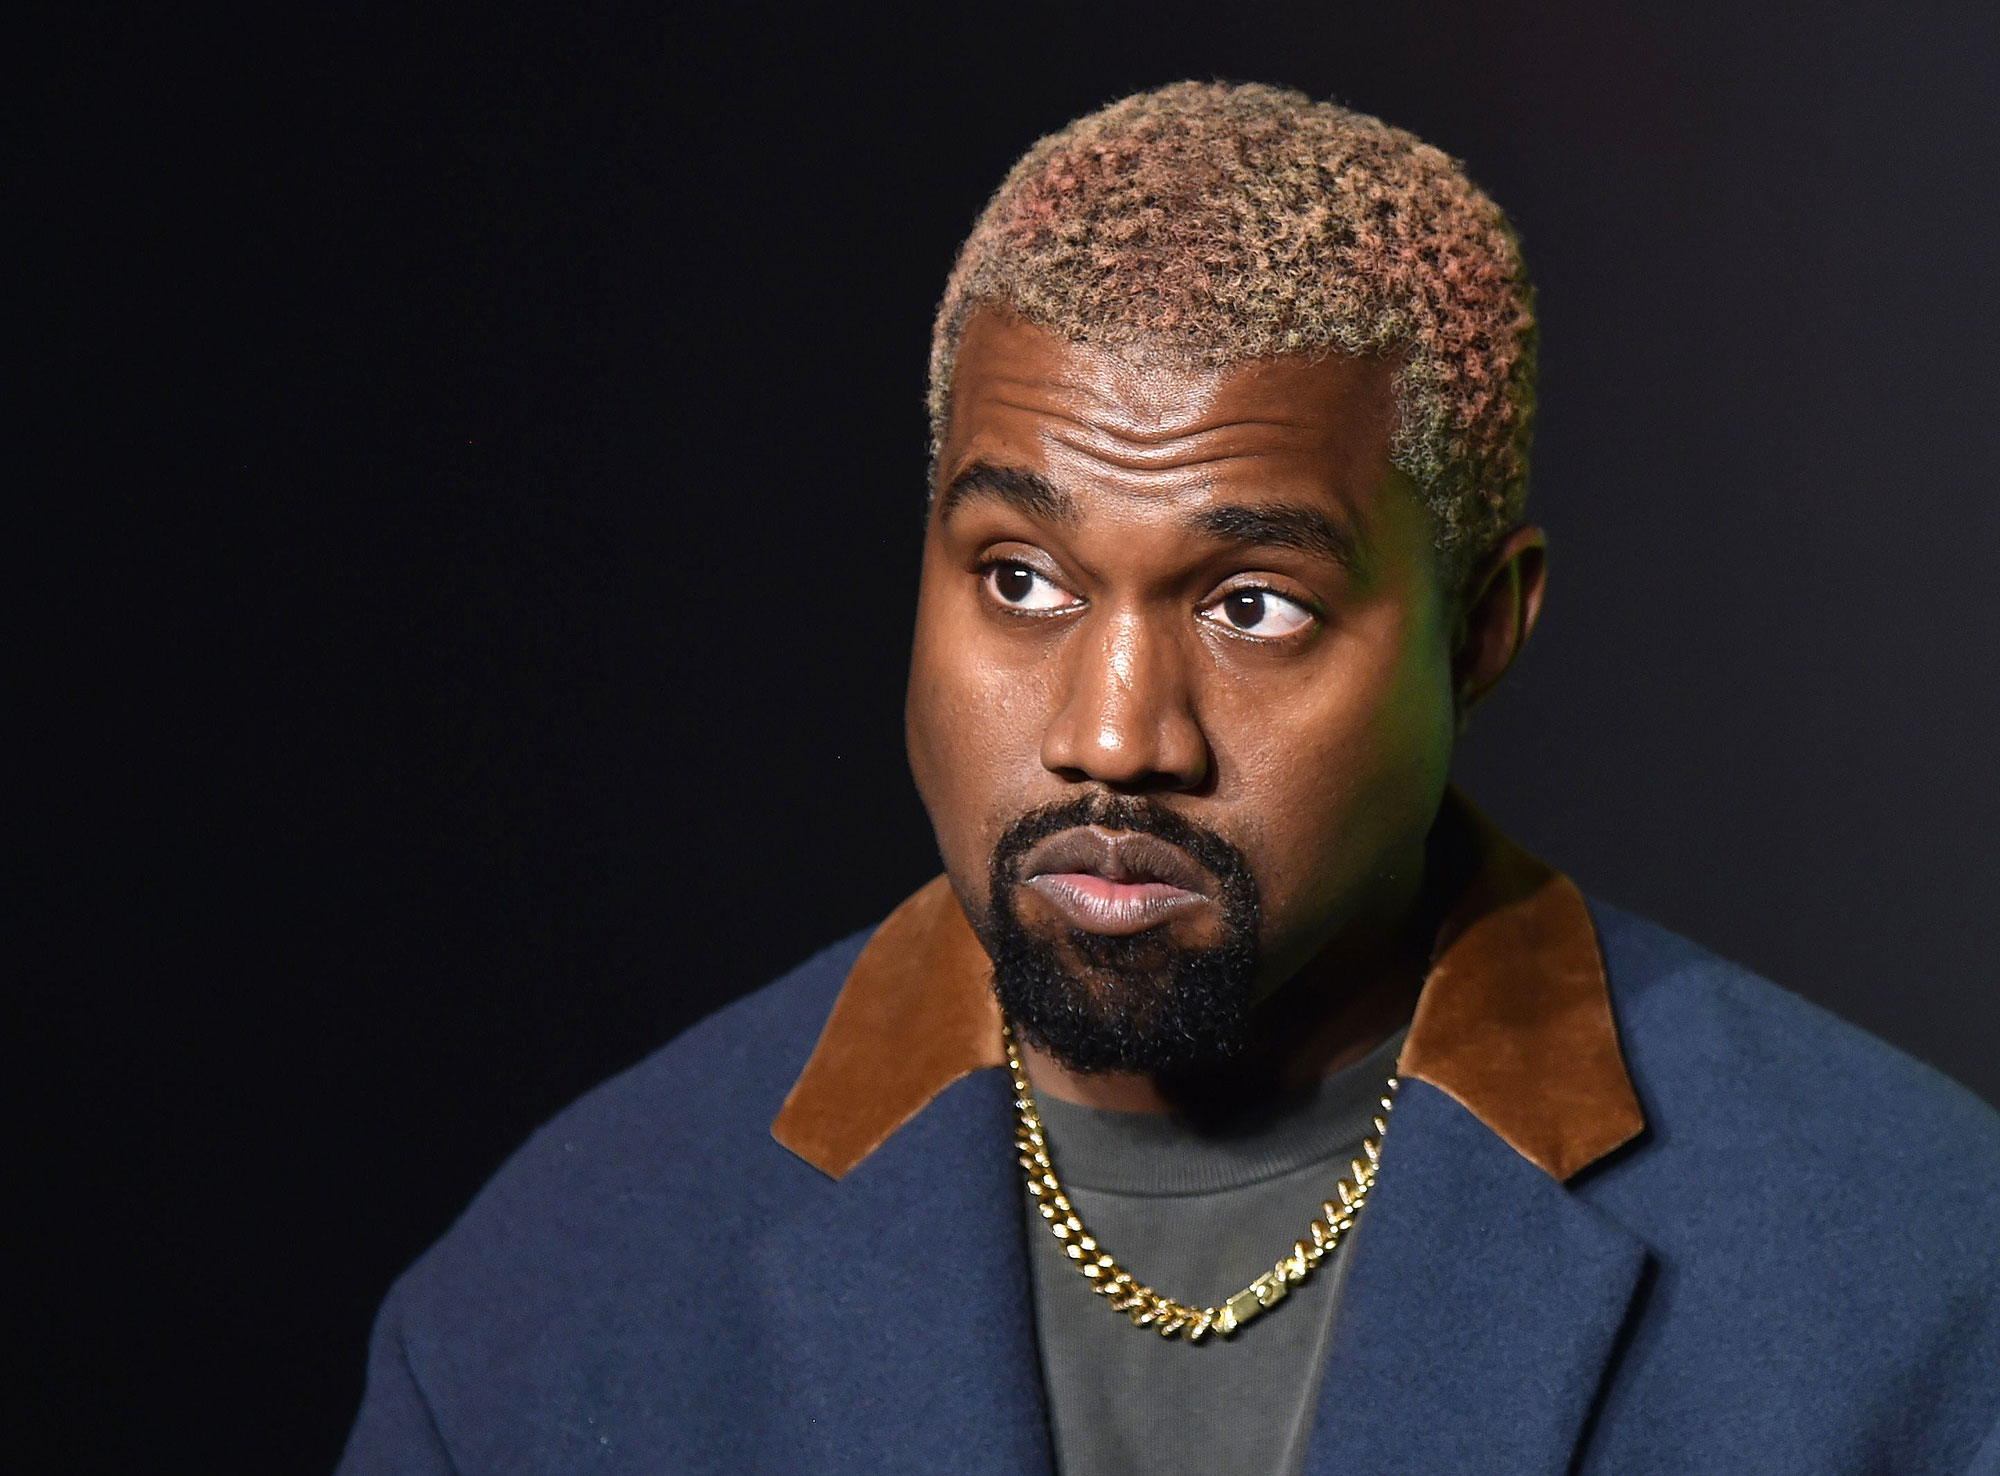 Mental Health Kanye West Releveations From Radio Interview